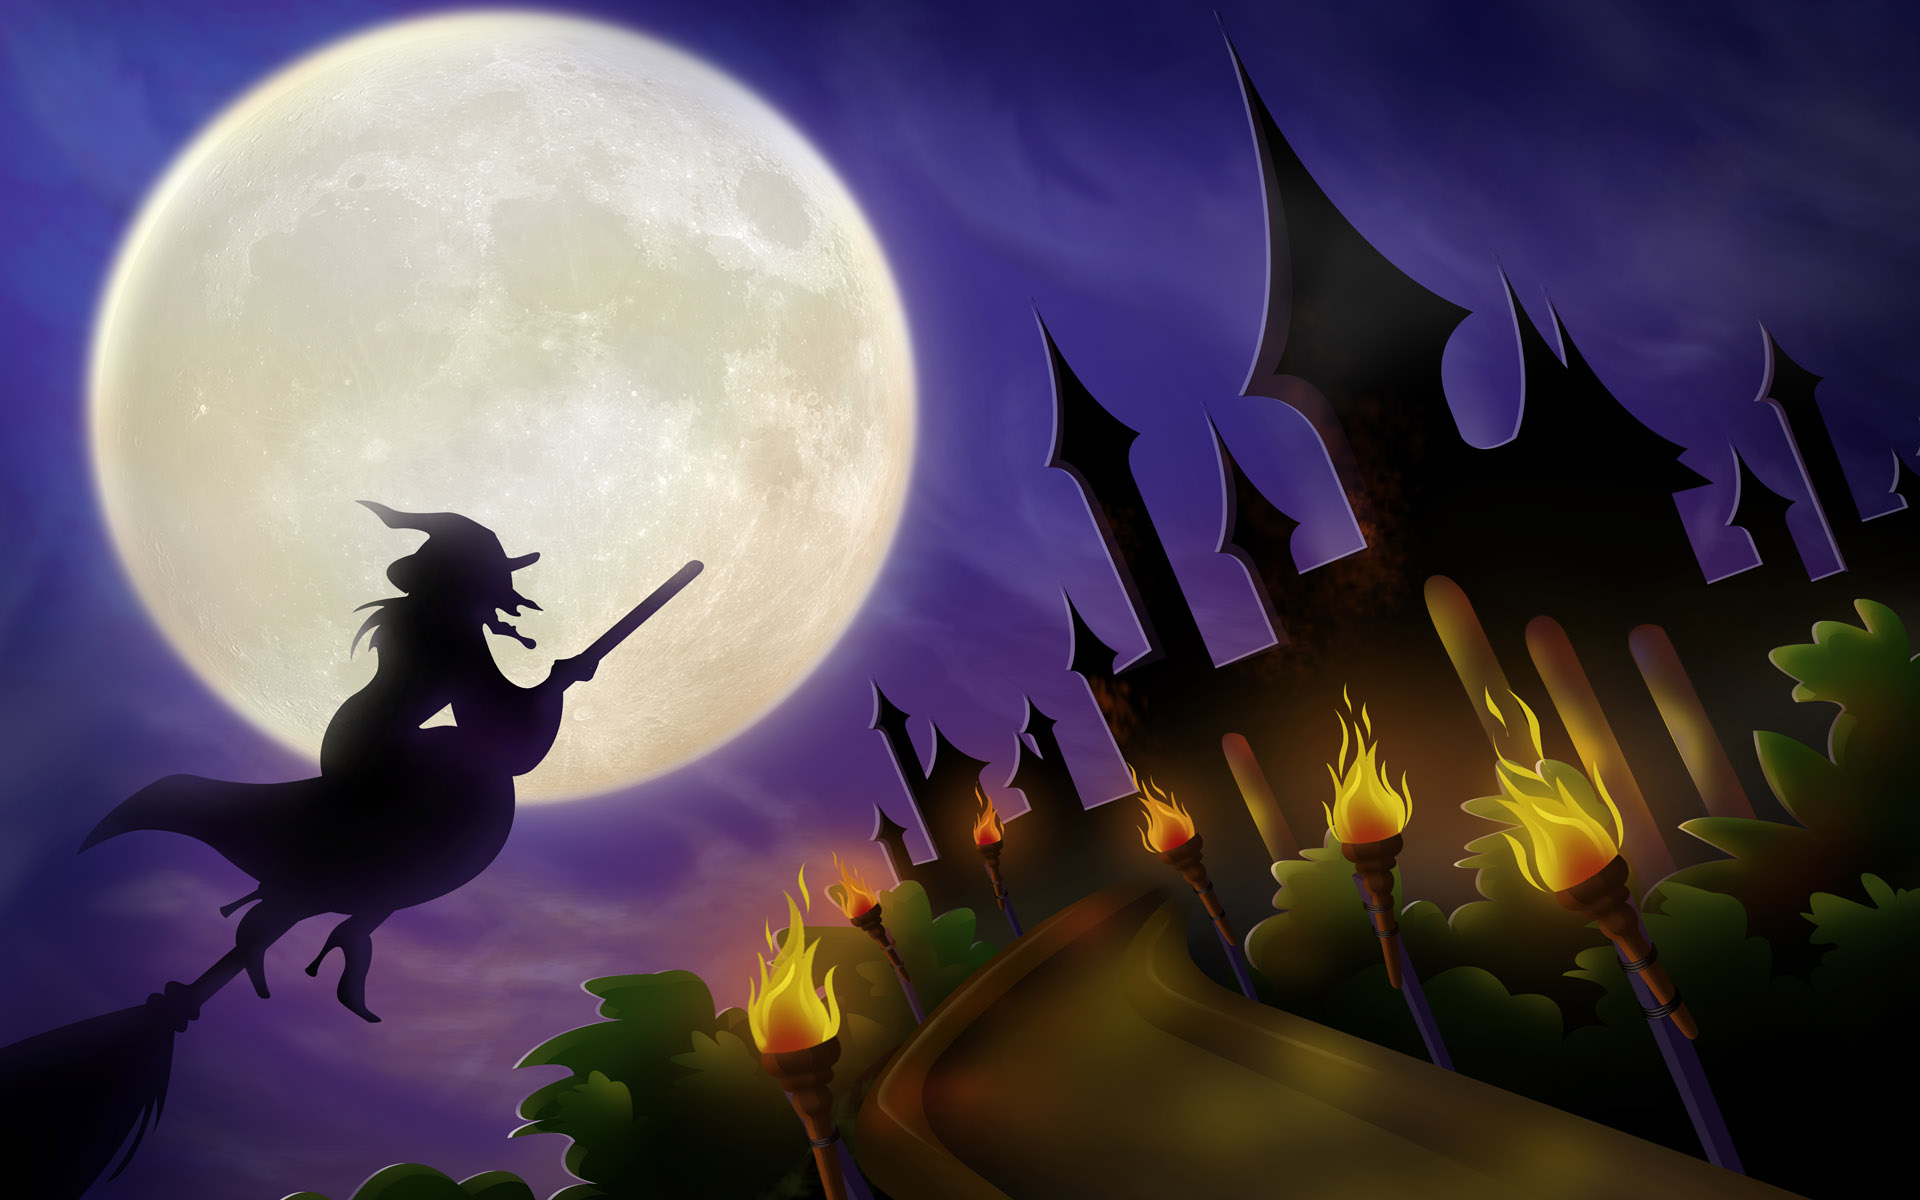 Download Wallpaper Halloween Magic - witch-on-a-broom-wallpapers_11250_1920x1200  Image_154277.jpg